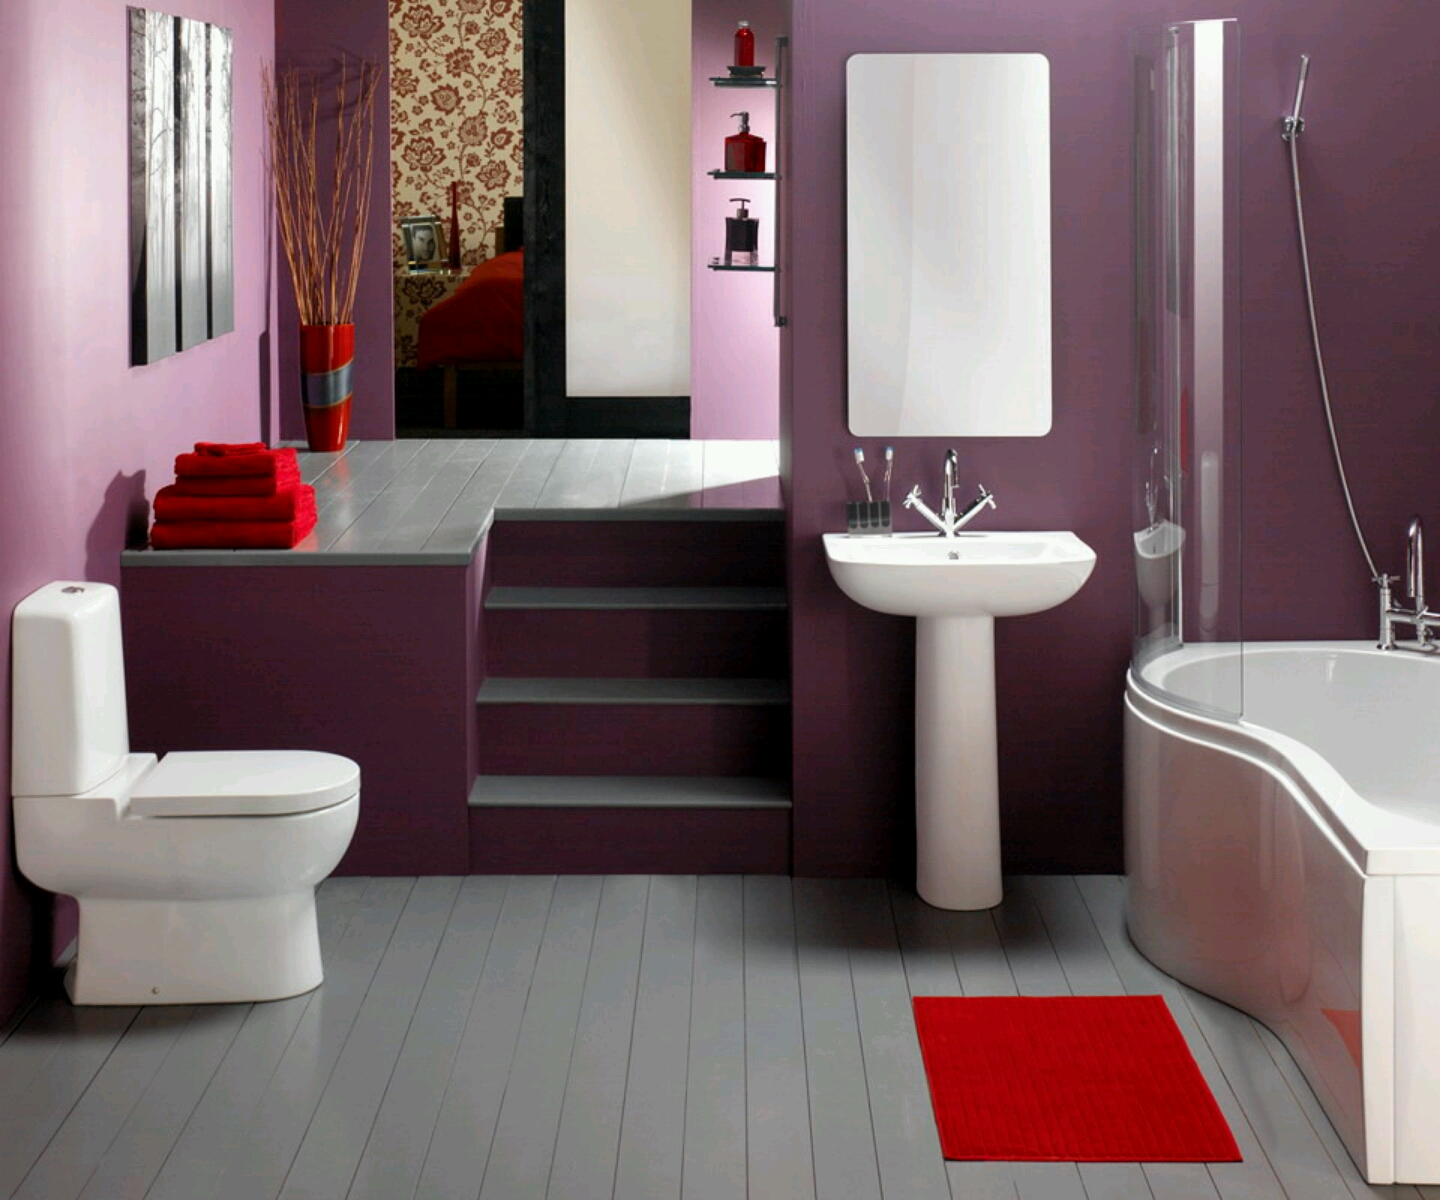 New home designs latest luxury modern bathrooms designs for Bathroom ideas color schemes